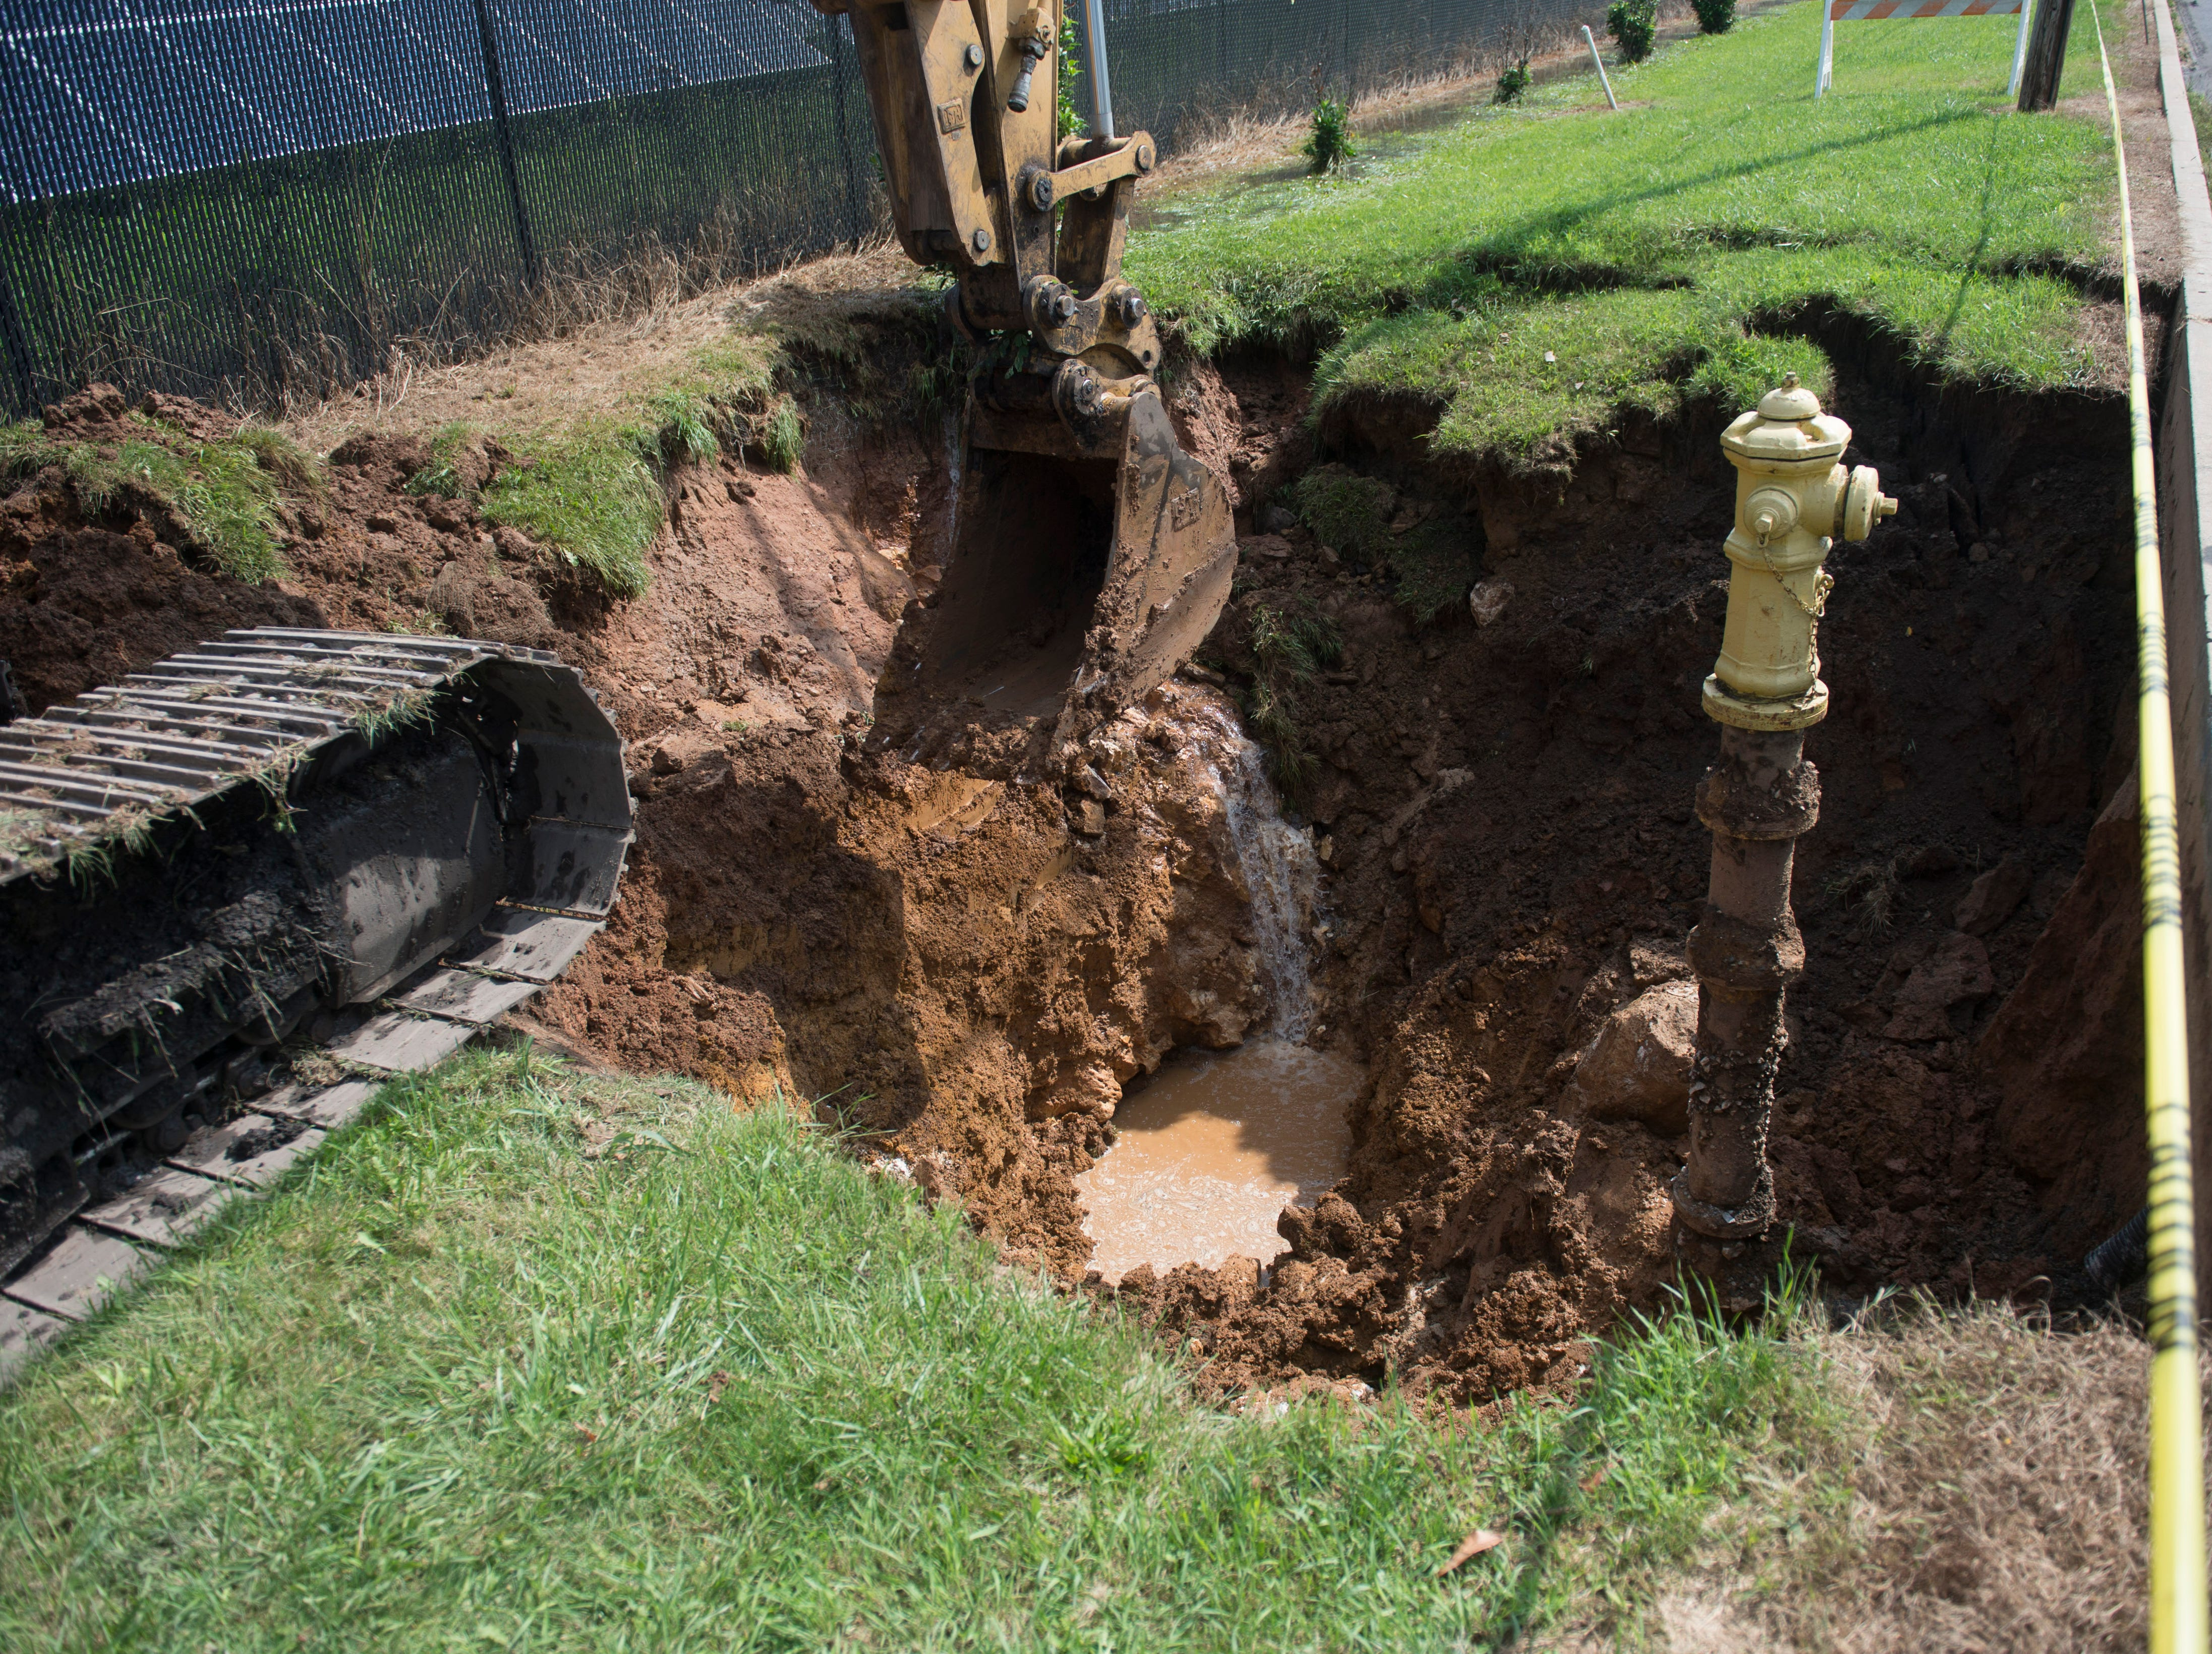 A sink hole, over 10 feet deep, opened up alongside Route 30 in Thomasville on July 26, 2018.